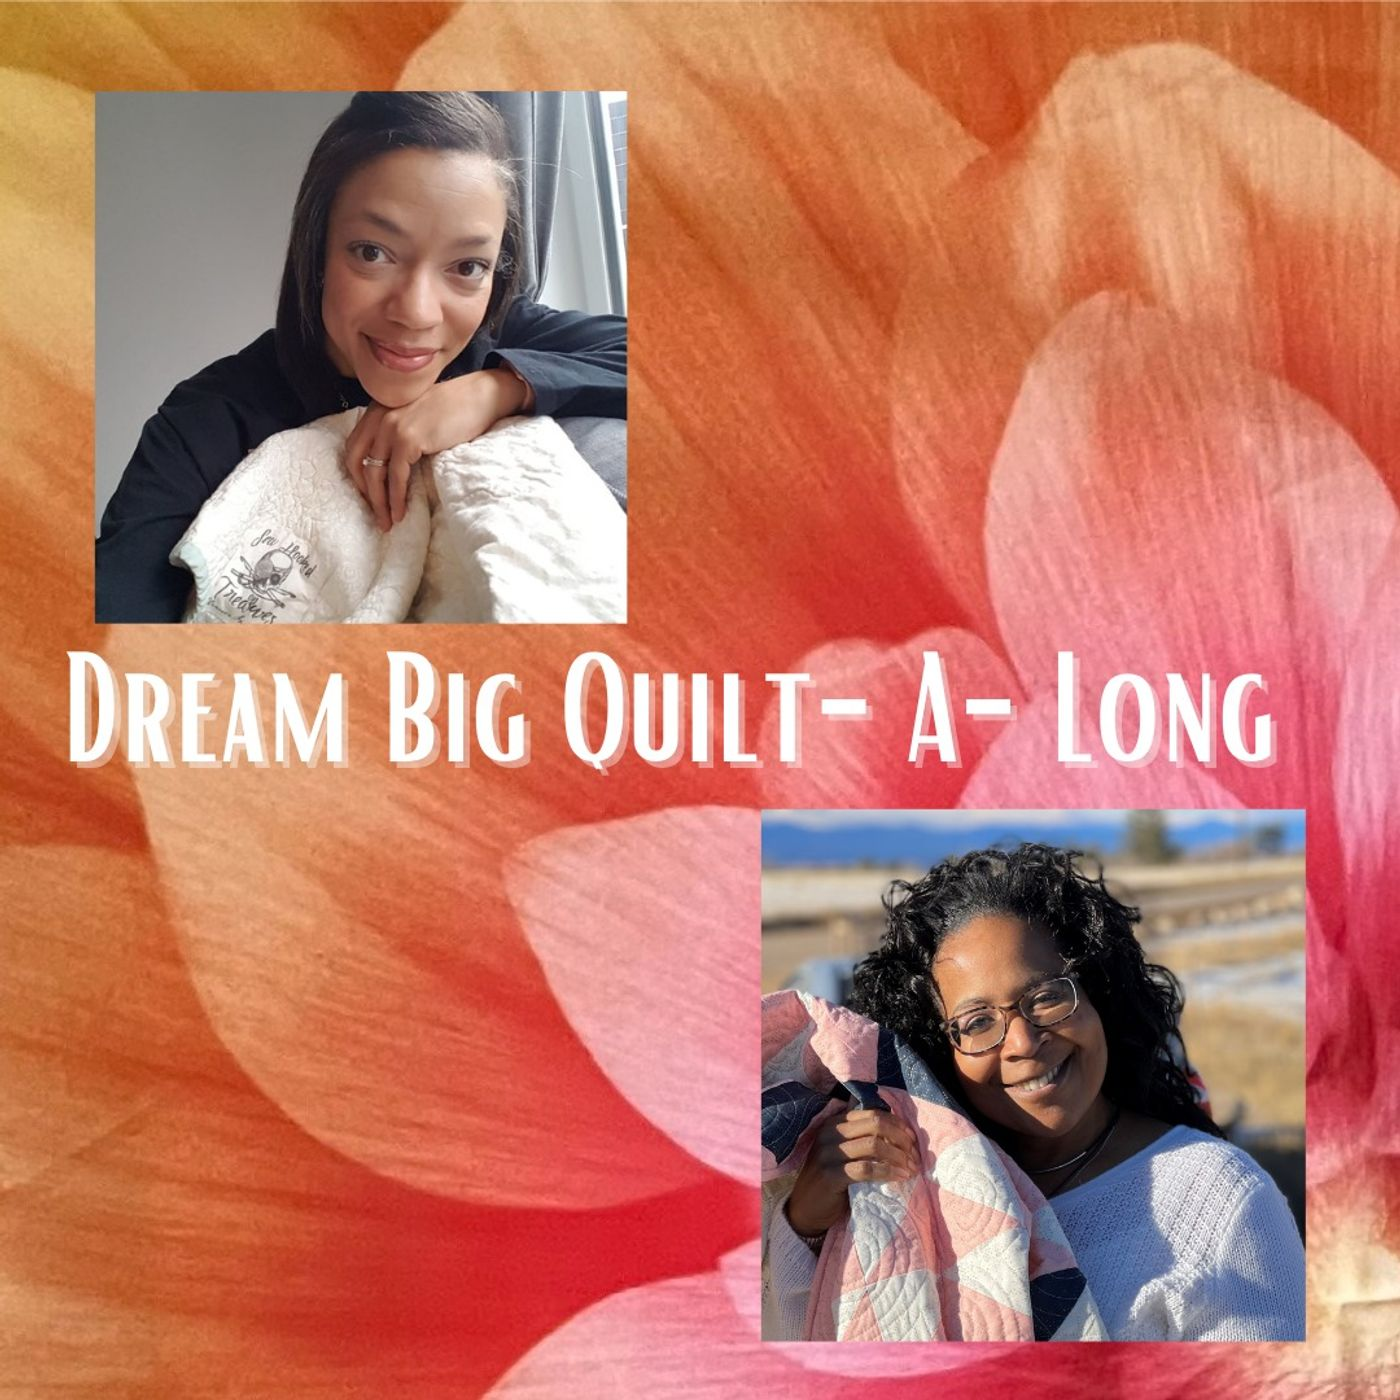 Dream Big Quilt-A-Long with Mary Davis and Shereece Spain